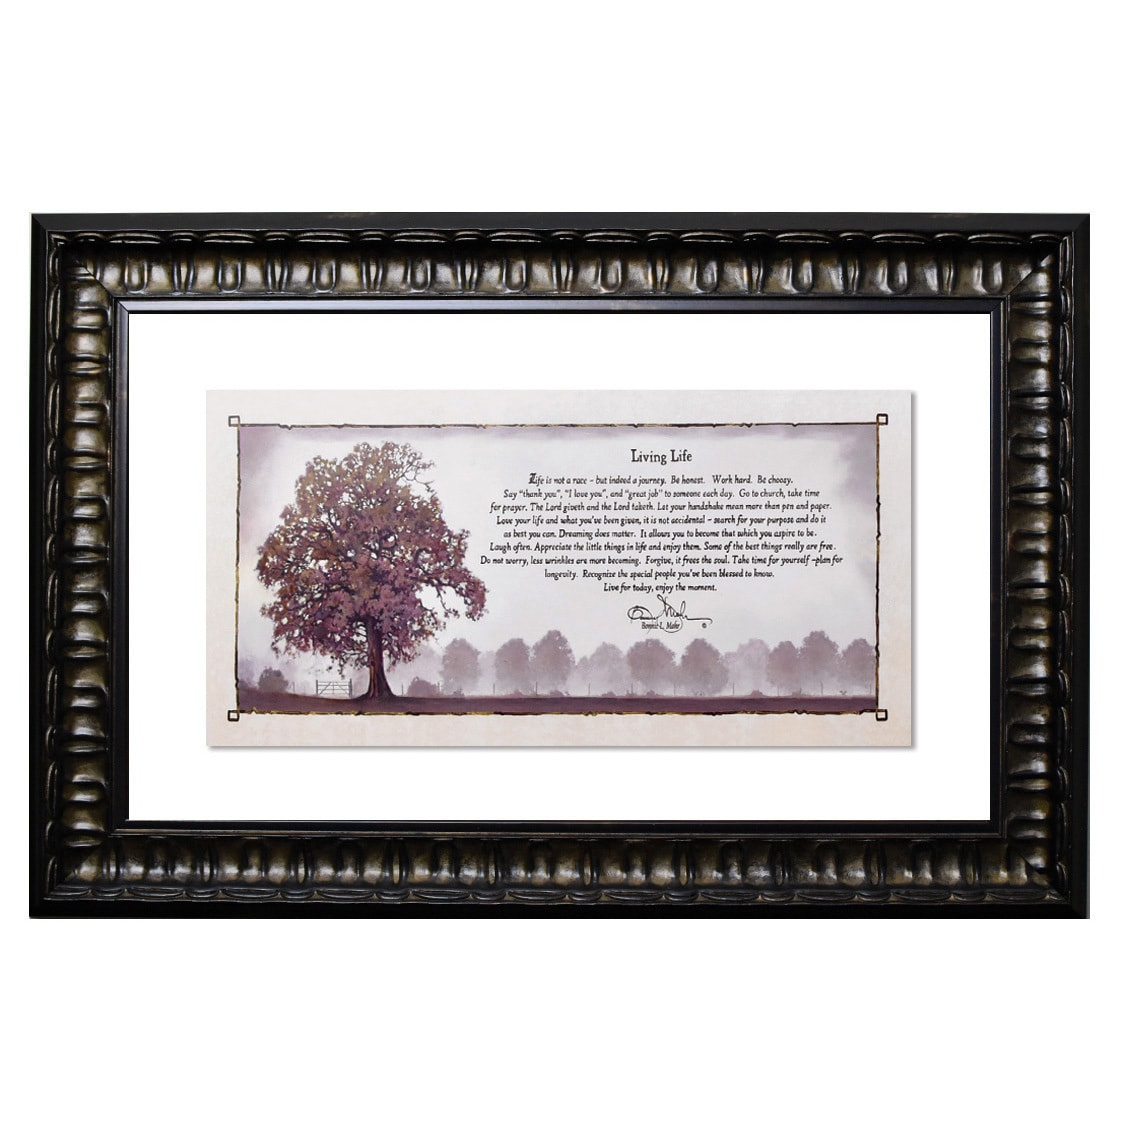 Living Life Framed Wall Art - Free Shipping Today - Overstock.com ...